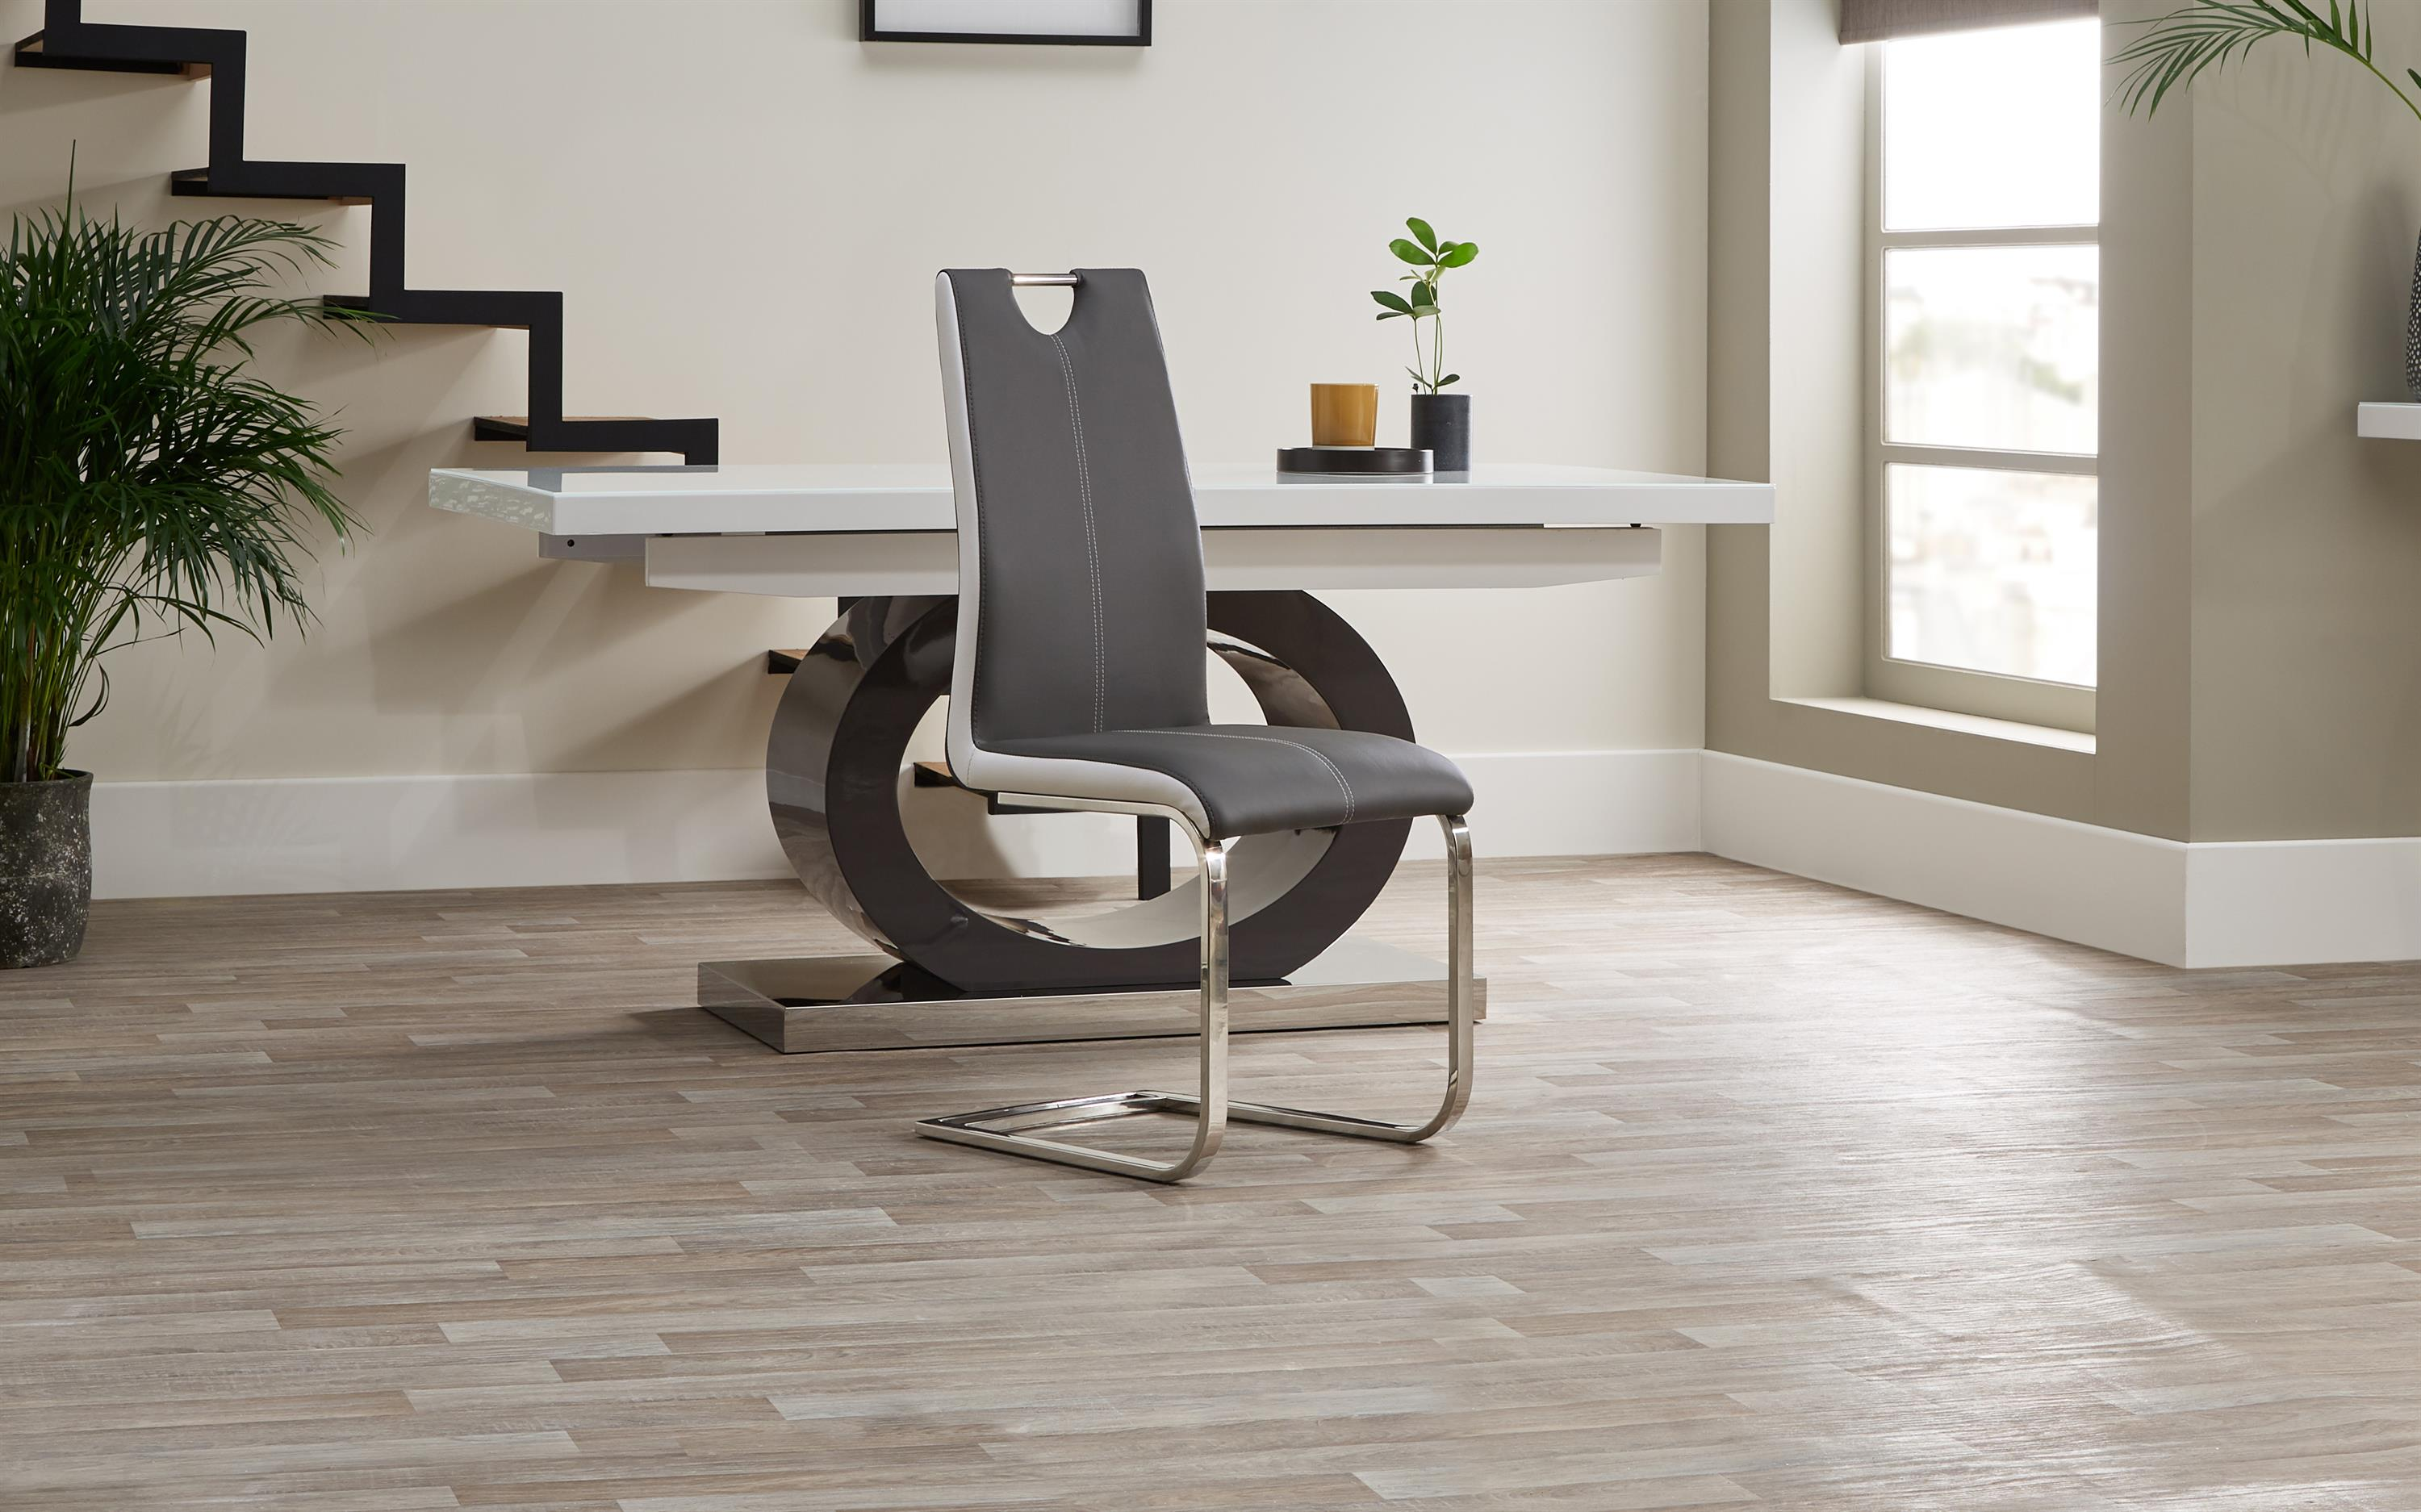 Tokyo White & Grey Dining Chair